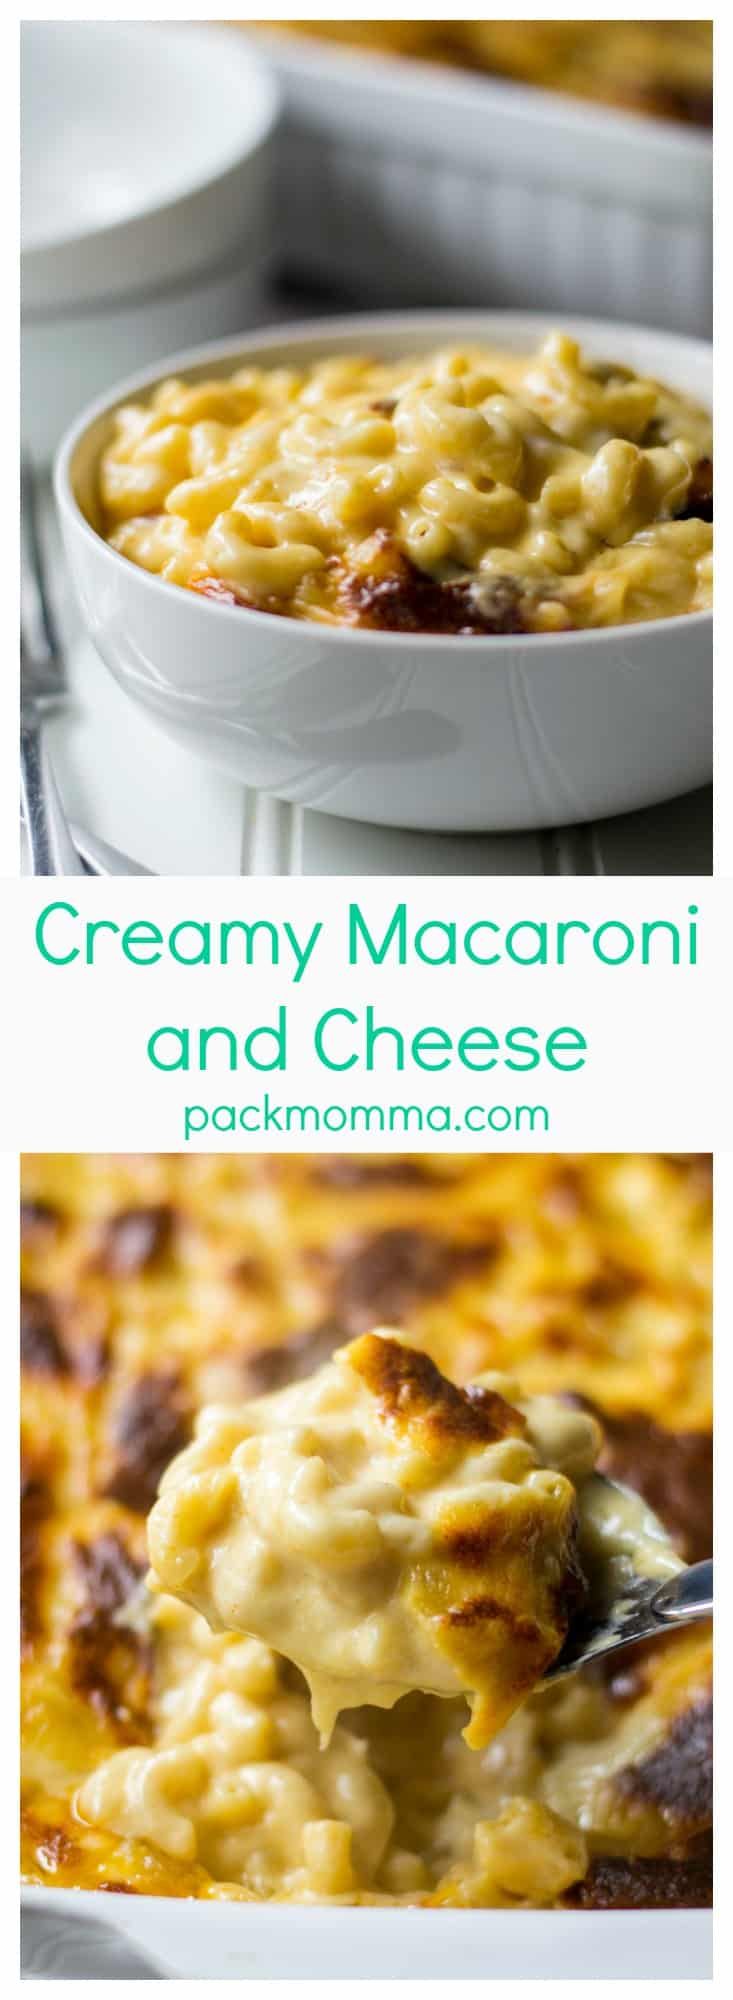 Creamy Macaroni and Cheese   This Creamy Macaroni and Cheese is the only mac and cheese recipe you will ever need.  Rich, decadent and creamy, this is the perfect comfort food dish!   Pack Momma   https://www.packmomma.com